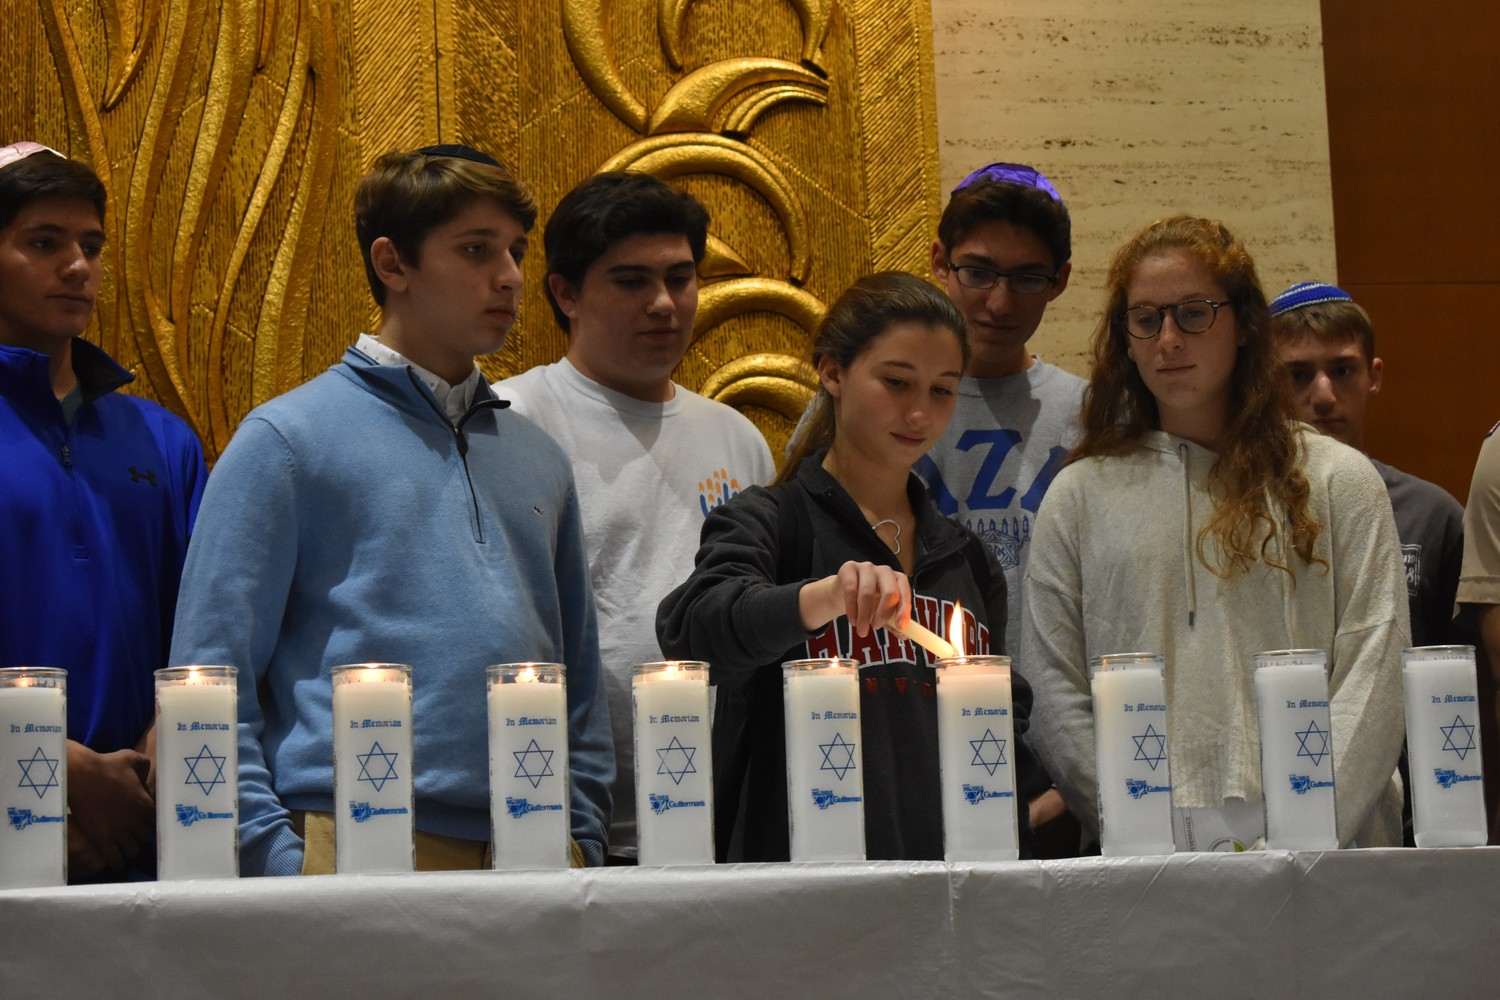 Student leaders of B'nai B'rith Youth Organization and members of Boy Scout Troop 214 lit candles in memory of the 11 people killed during a shooting at the Tree of Life Congregation synagogue in Pittsburgh's Squirrel Hill neighborhood on Oct. 27.